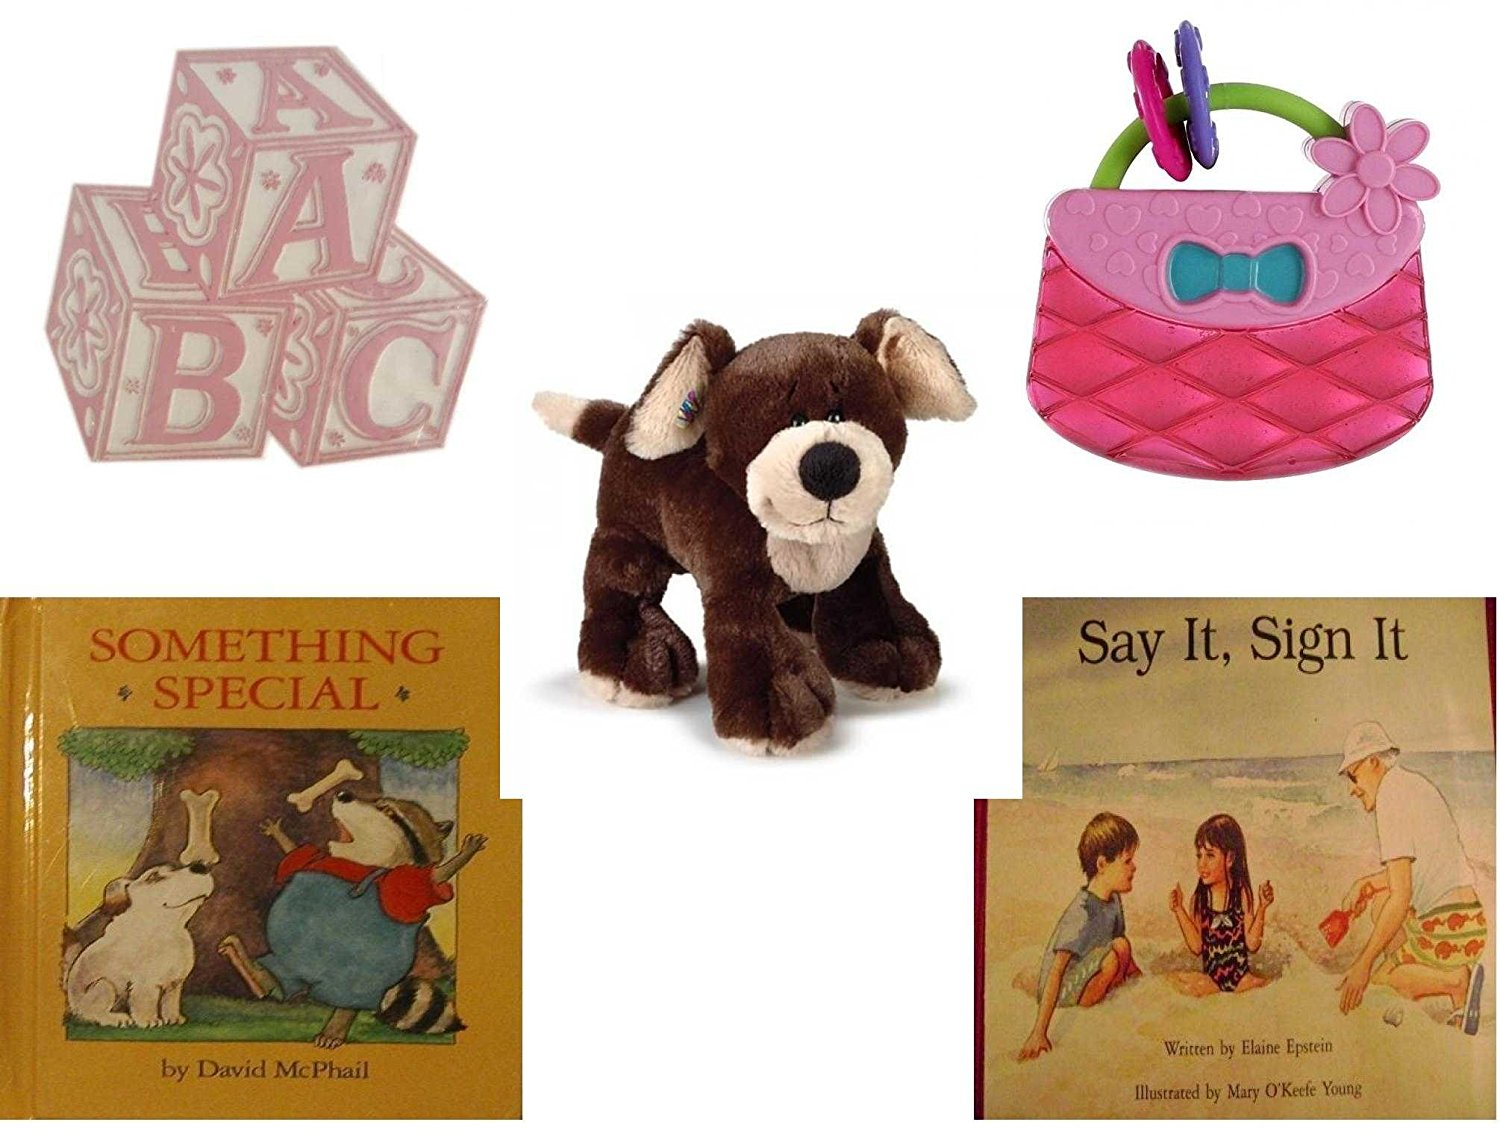 Children's Gift Bundle - Ages 0-2 [5 Piece] - ABC Baby Blocks Cake Topper Pink Girl - Bright Starts Pretty in Pink Carry Teethe Purse - Webkinz HM348 Mocha Pup Plush Animal - Something Special - Say